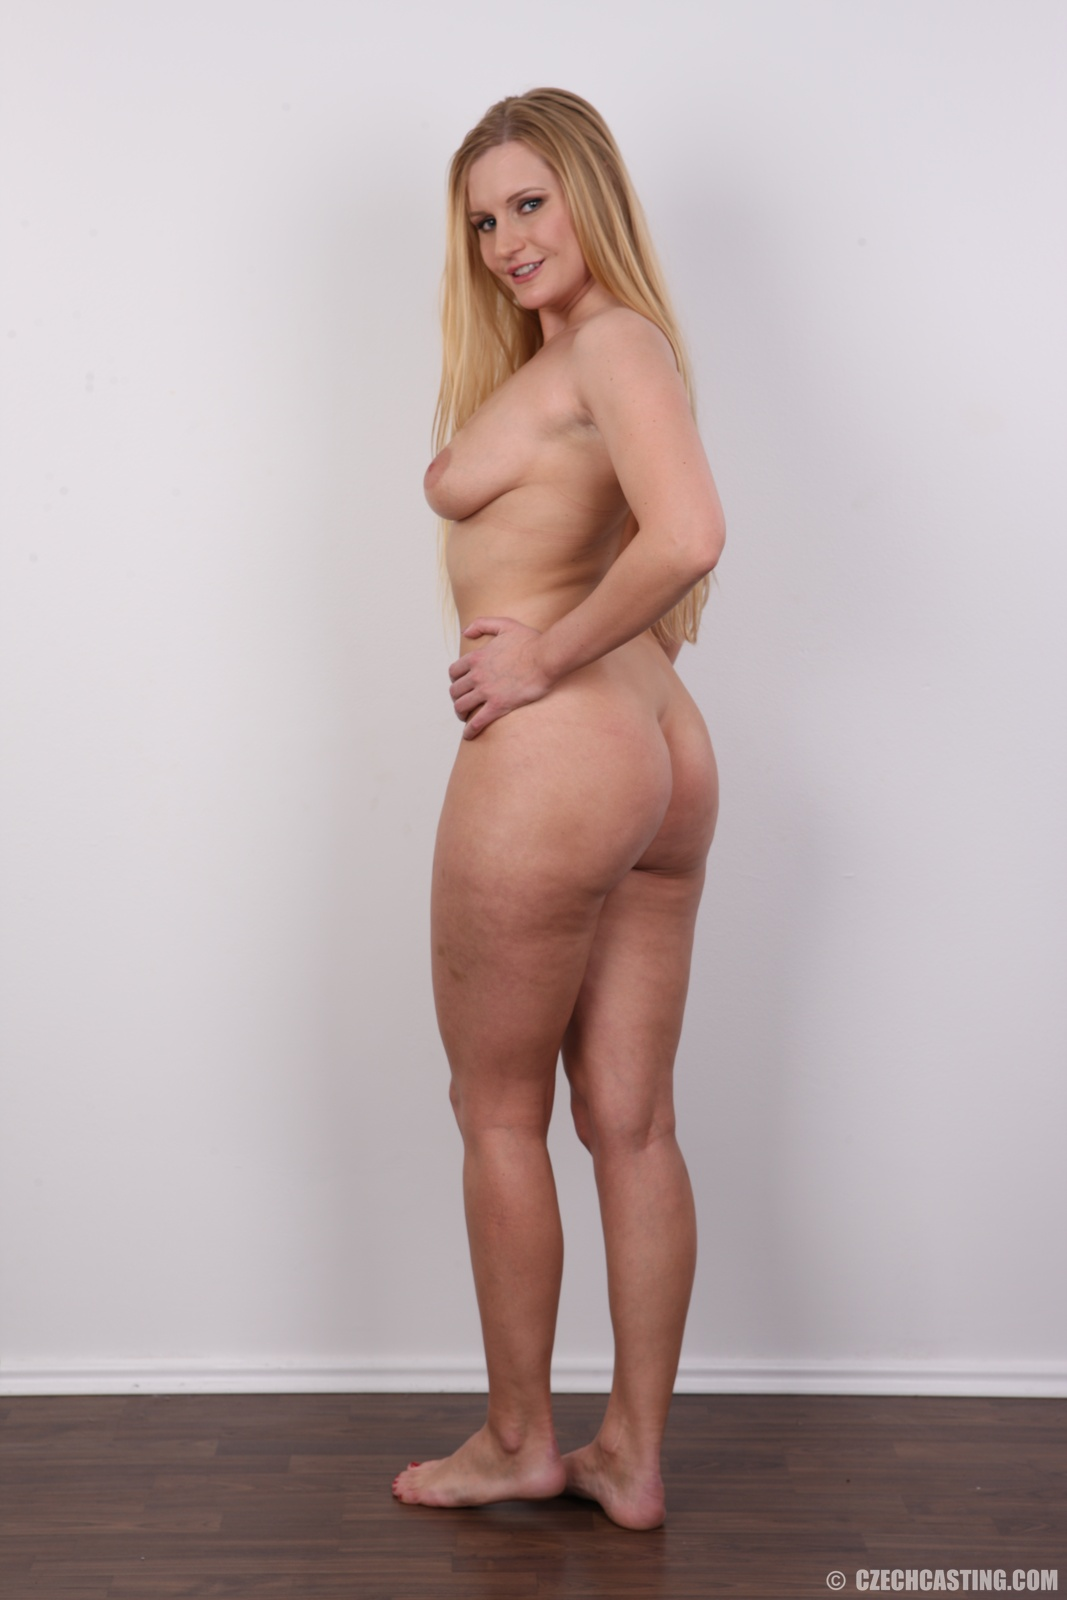 Oficial Uhura Porno czech casting jana (1388) my friends, have you ever seen a